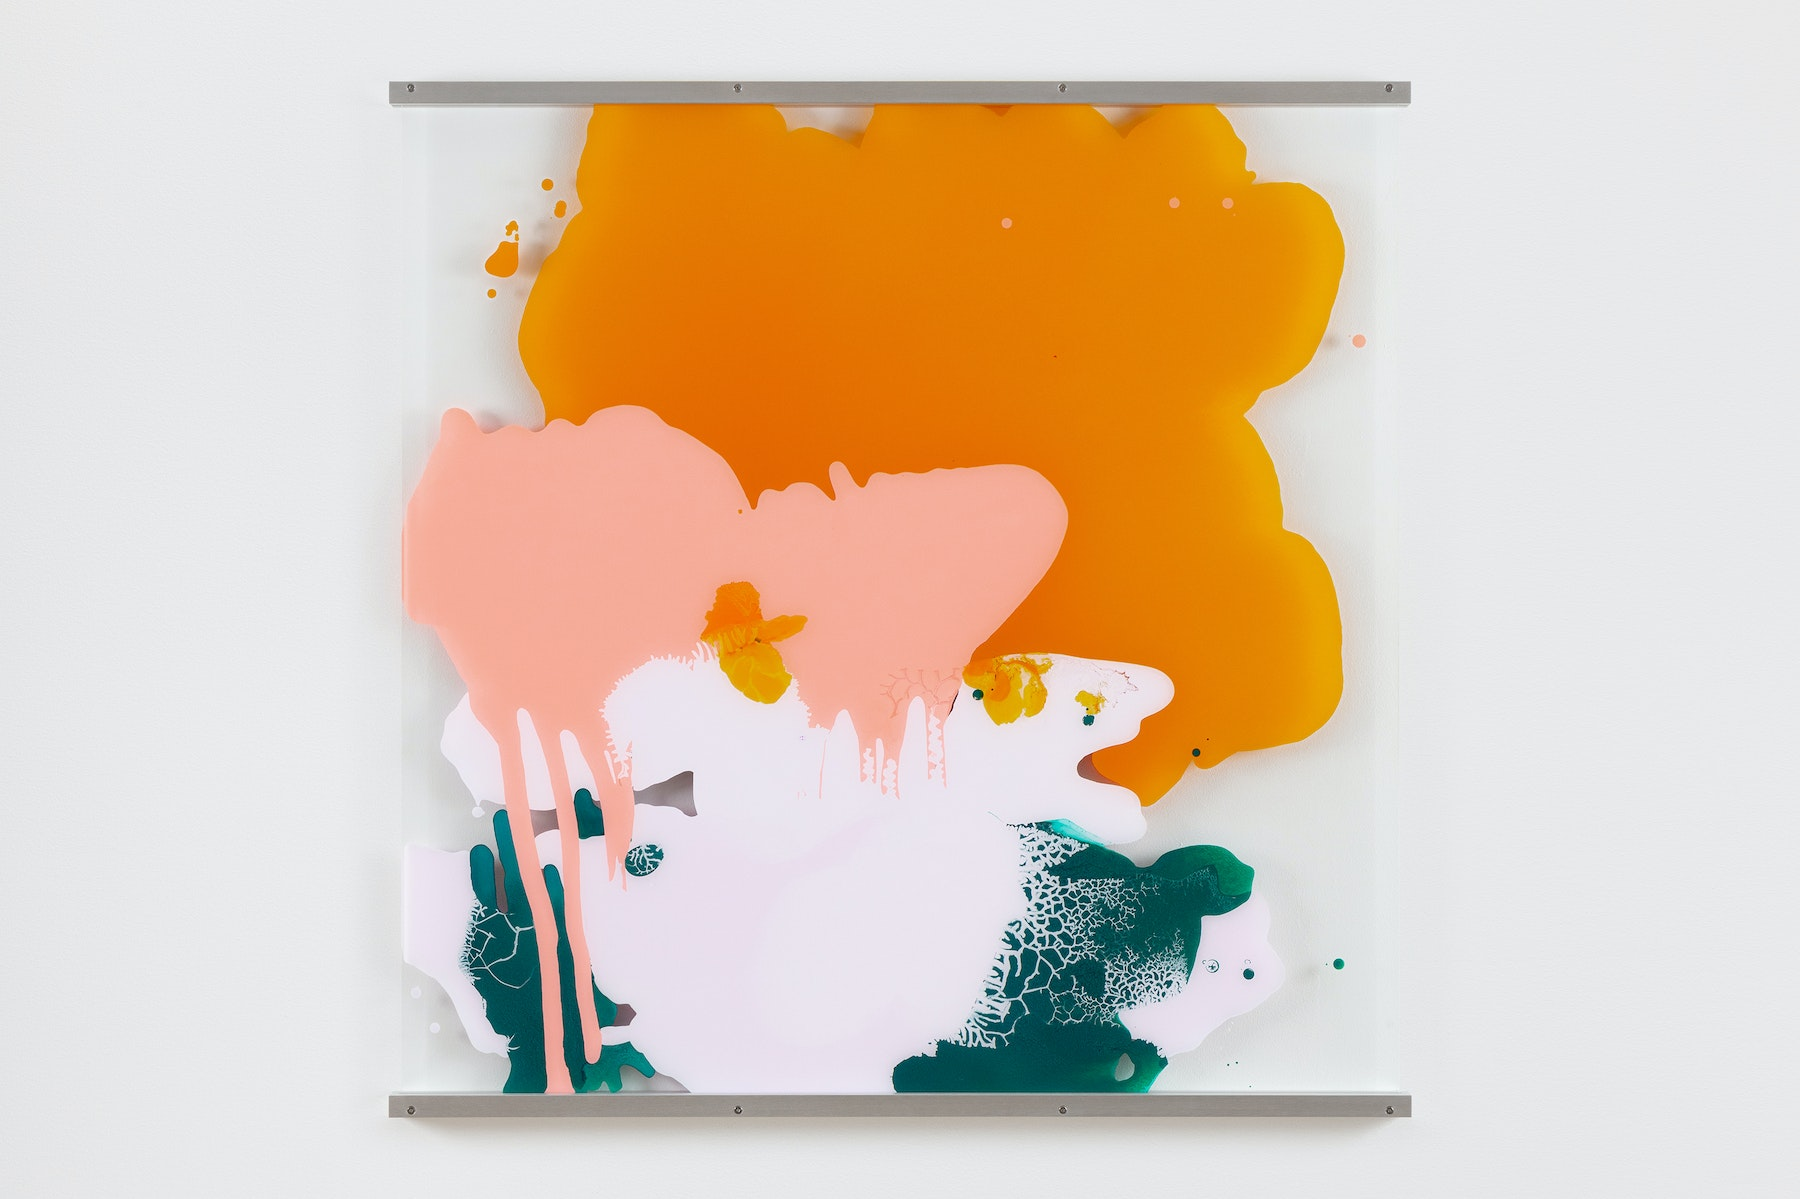 """Yunhee Min """"Vitreous Opacities (Single Wall #5),"""" 2021 Enamel, acrylic on tempered starphire glass with aluminum frame 45"""" x 45"""" [HxW] (114.3 x 114.3 cm); 46 ¹⁄₂"""" x 46"""" x 1 ¹⁄₂"""" [HxWxD] (118.11 x 116.84 x 3.81 cm) framed Inventory #MIN353 Courtesy of the artist and Vielmetter Los Angeles Photo credit: Evan Bedford"""